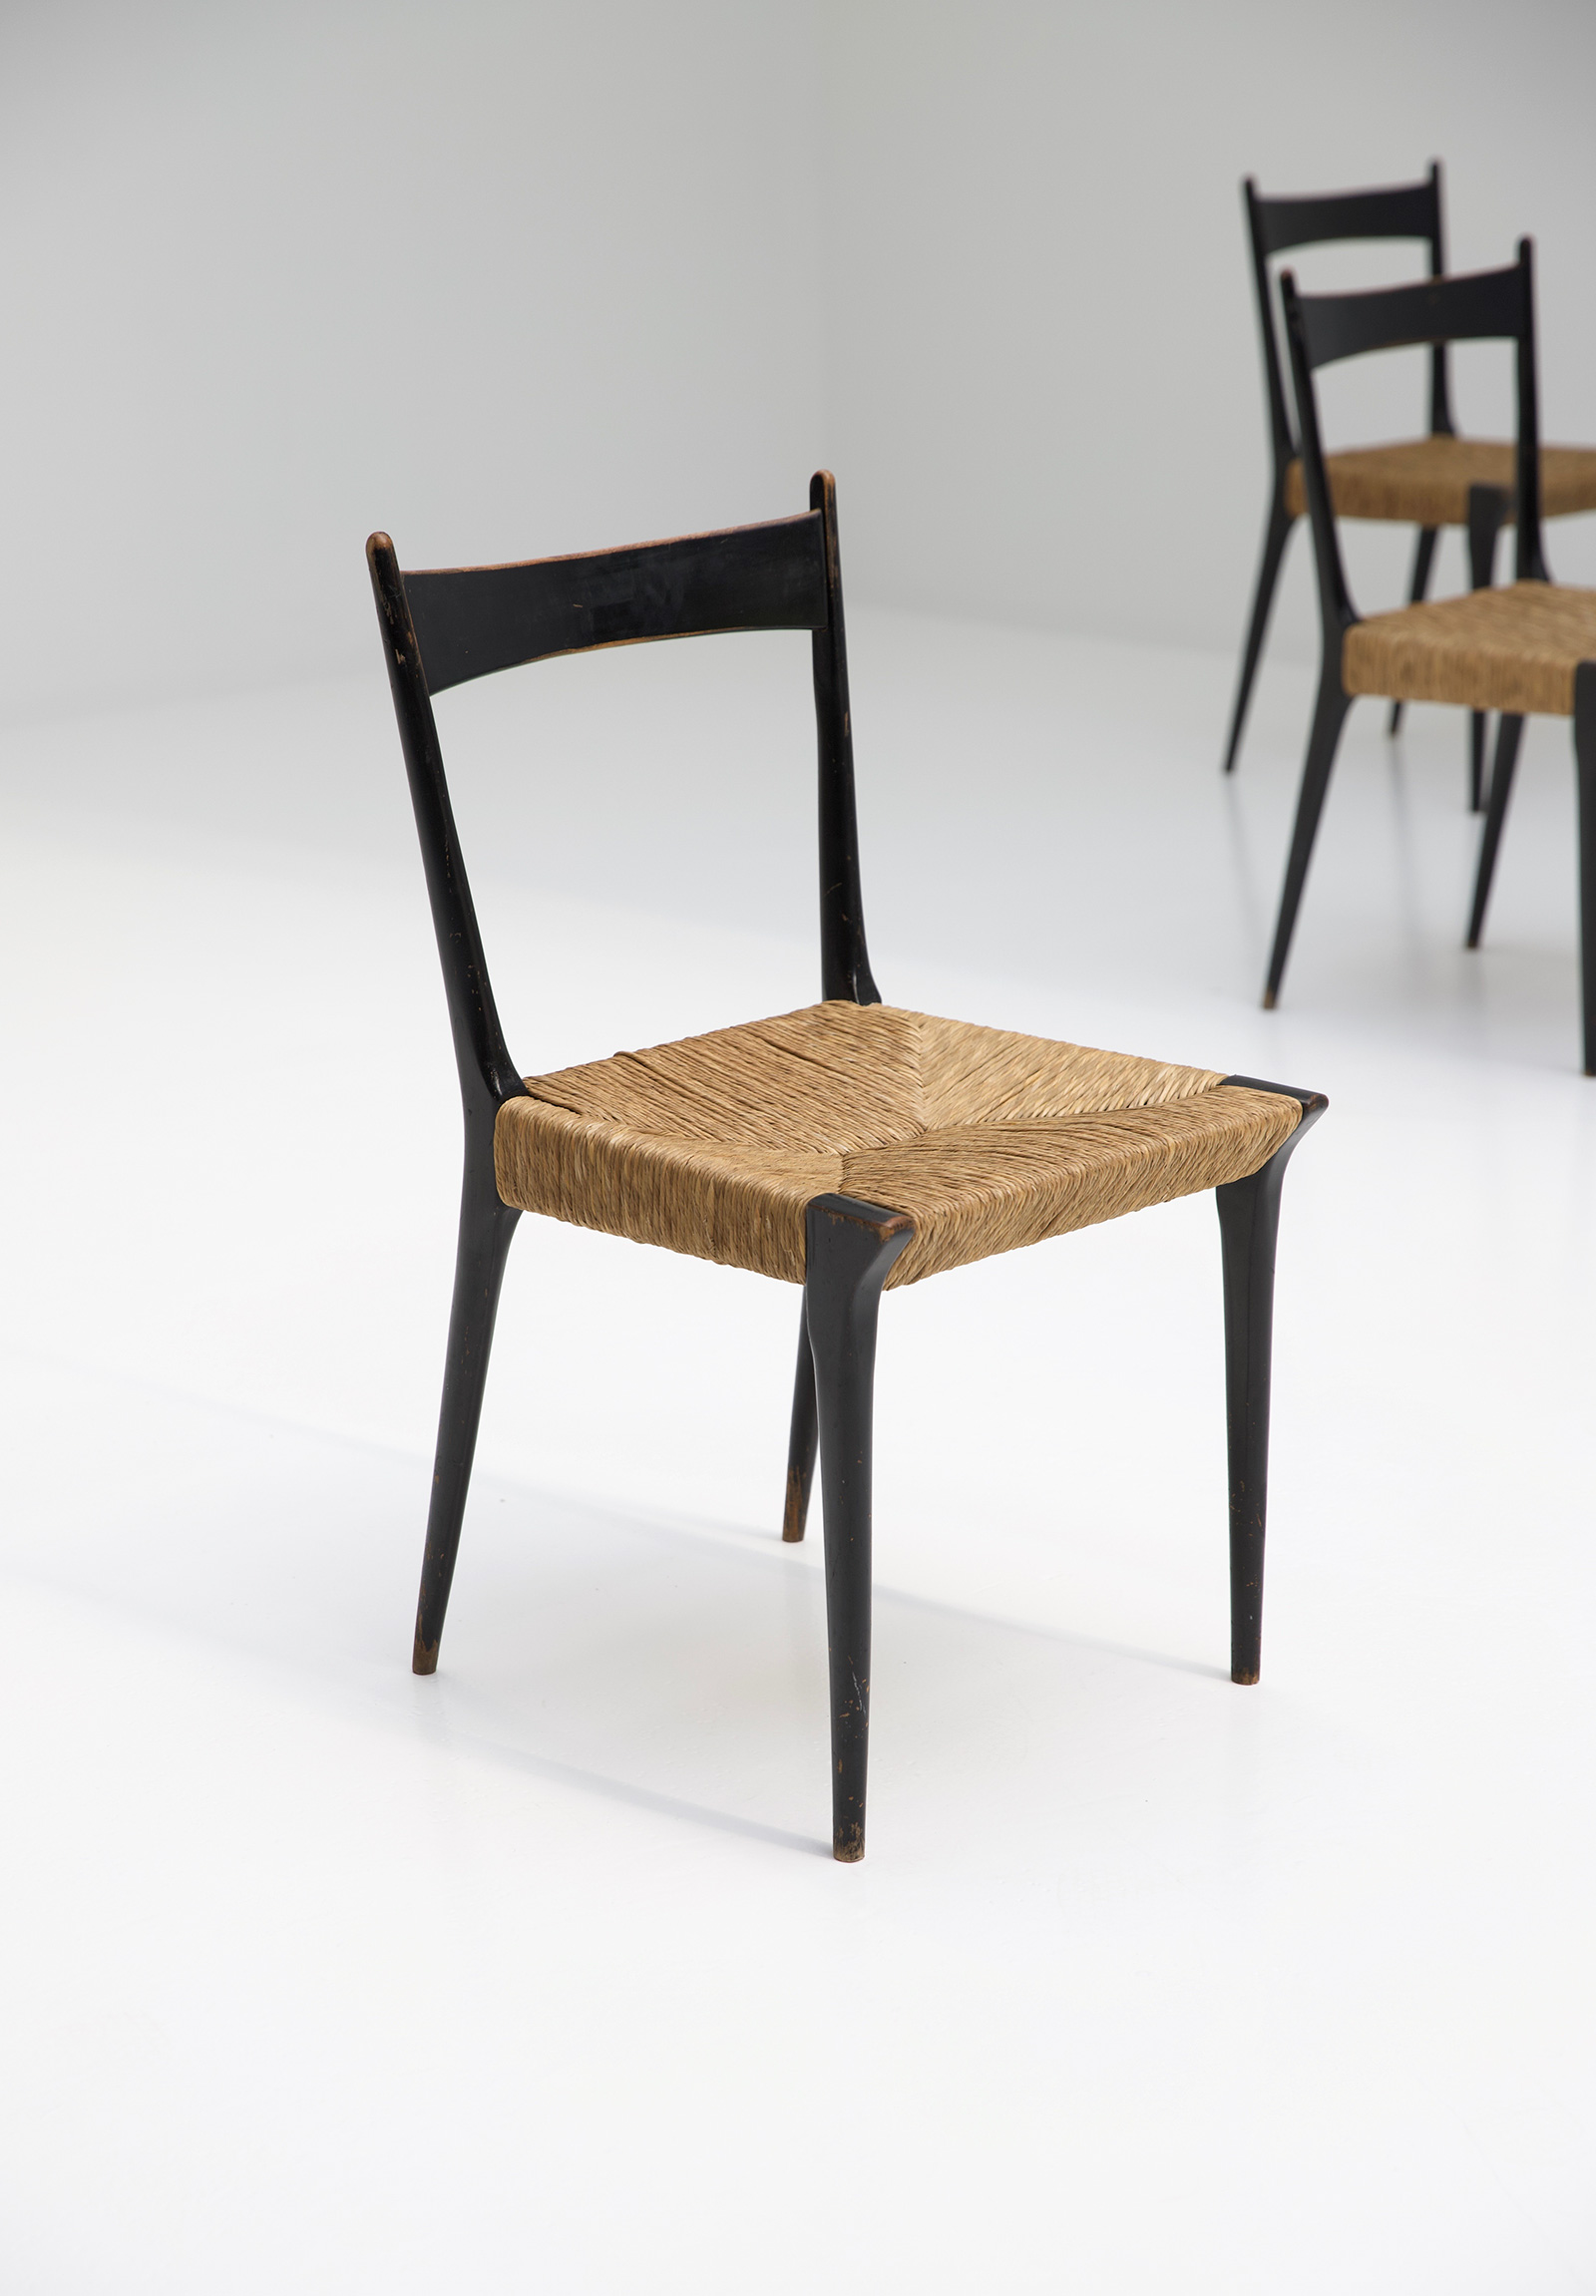 Alfred Hendrickx Woven Cane S2 Chairsimage 5